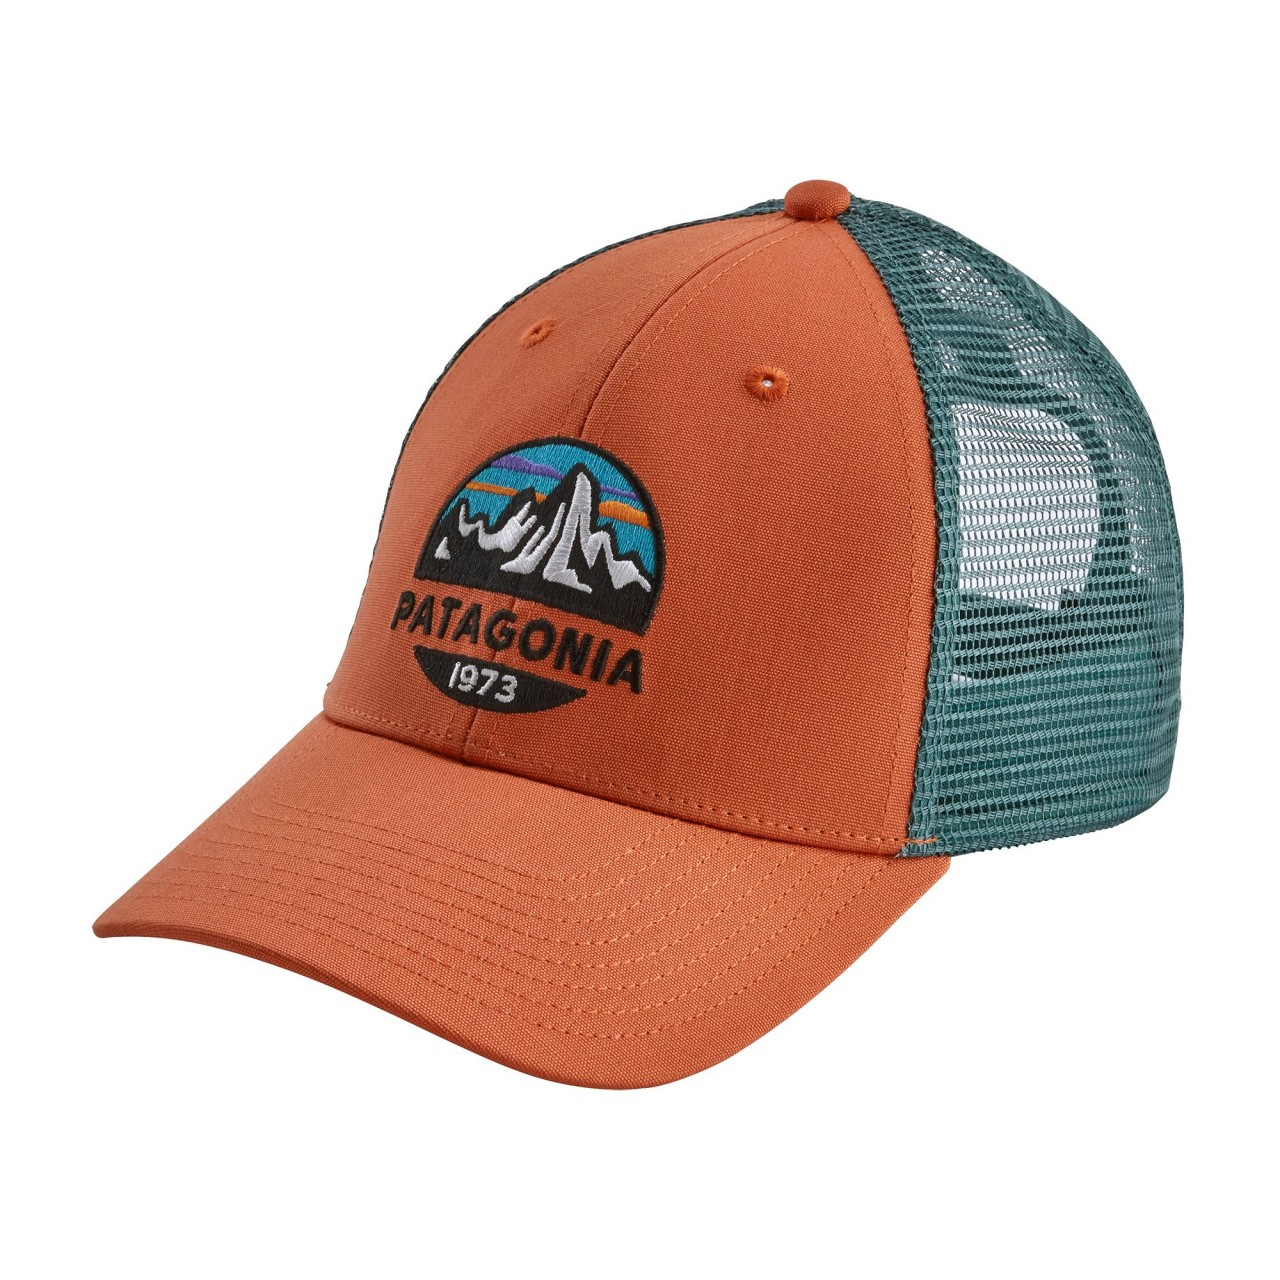 Patagonia Fitz Roy Scope LoPro Trucker Hat  75a6373b5ad